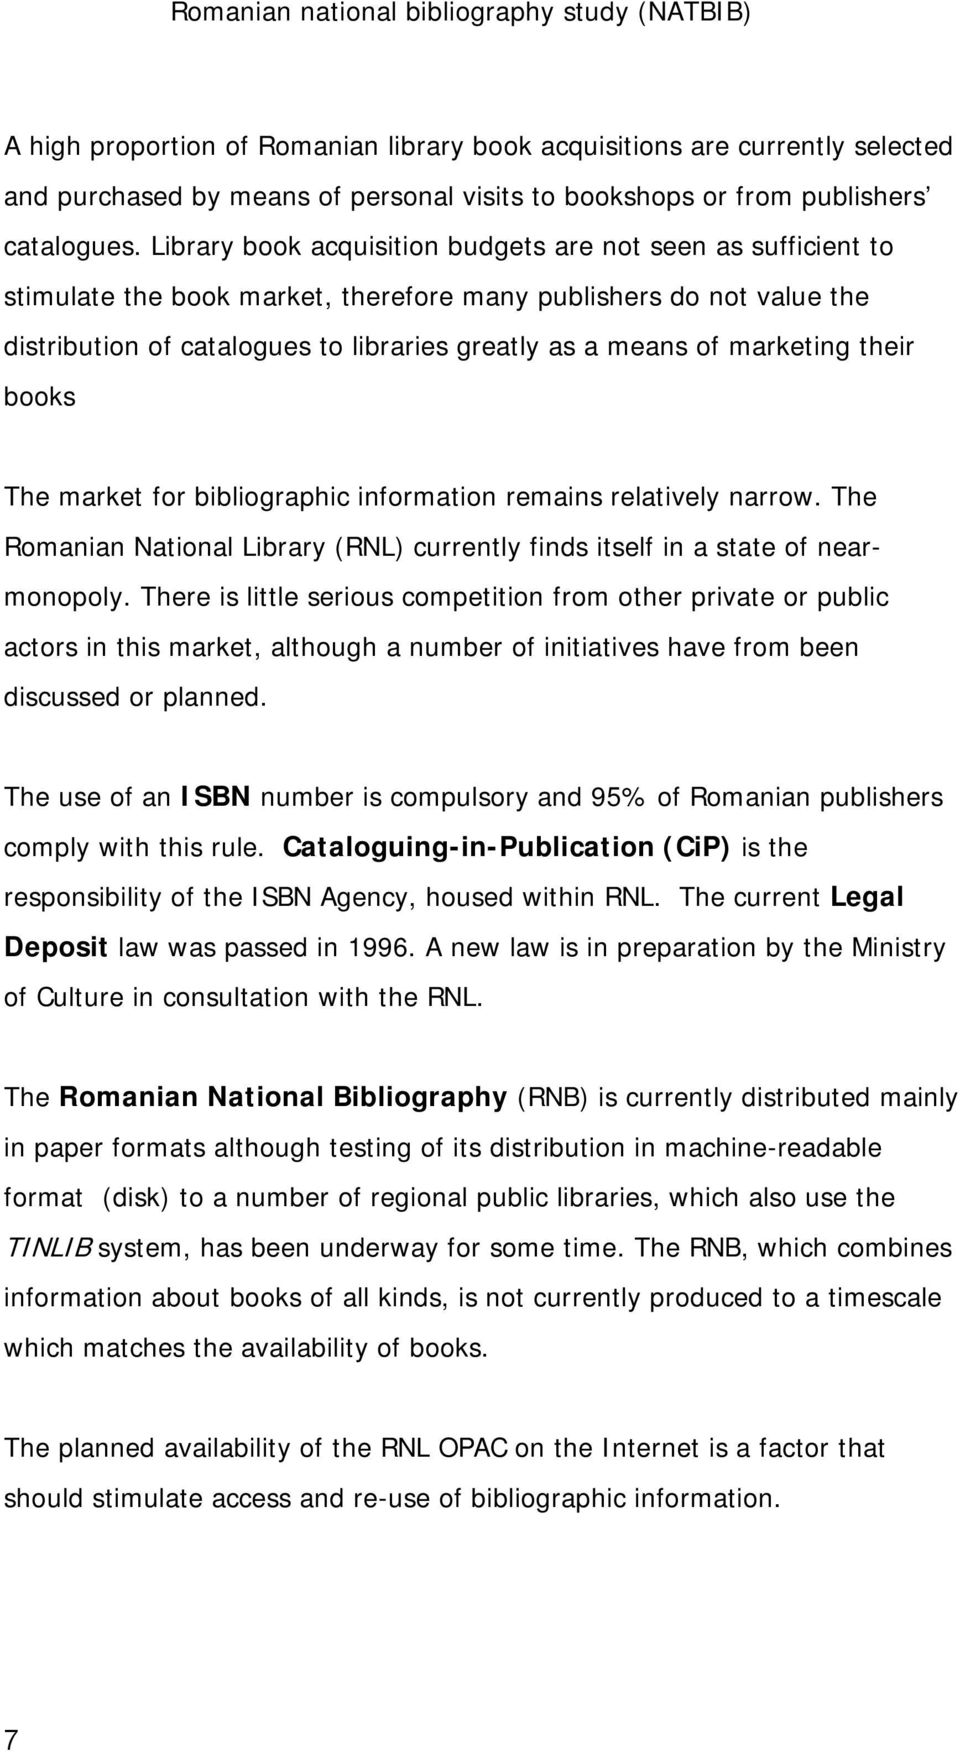 marketing their books The market for bibliographic information remains relatively narrow. The Romanian National Library (RNL) currently finds itself in a state of nearmonopoly.